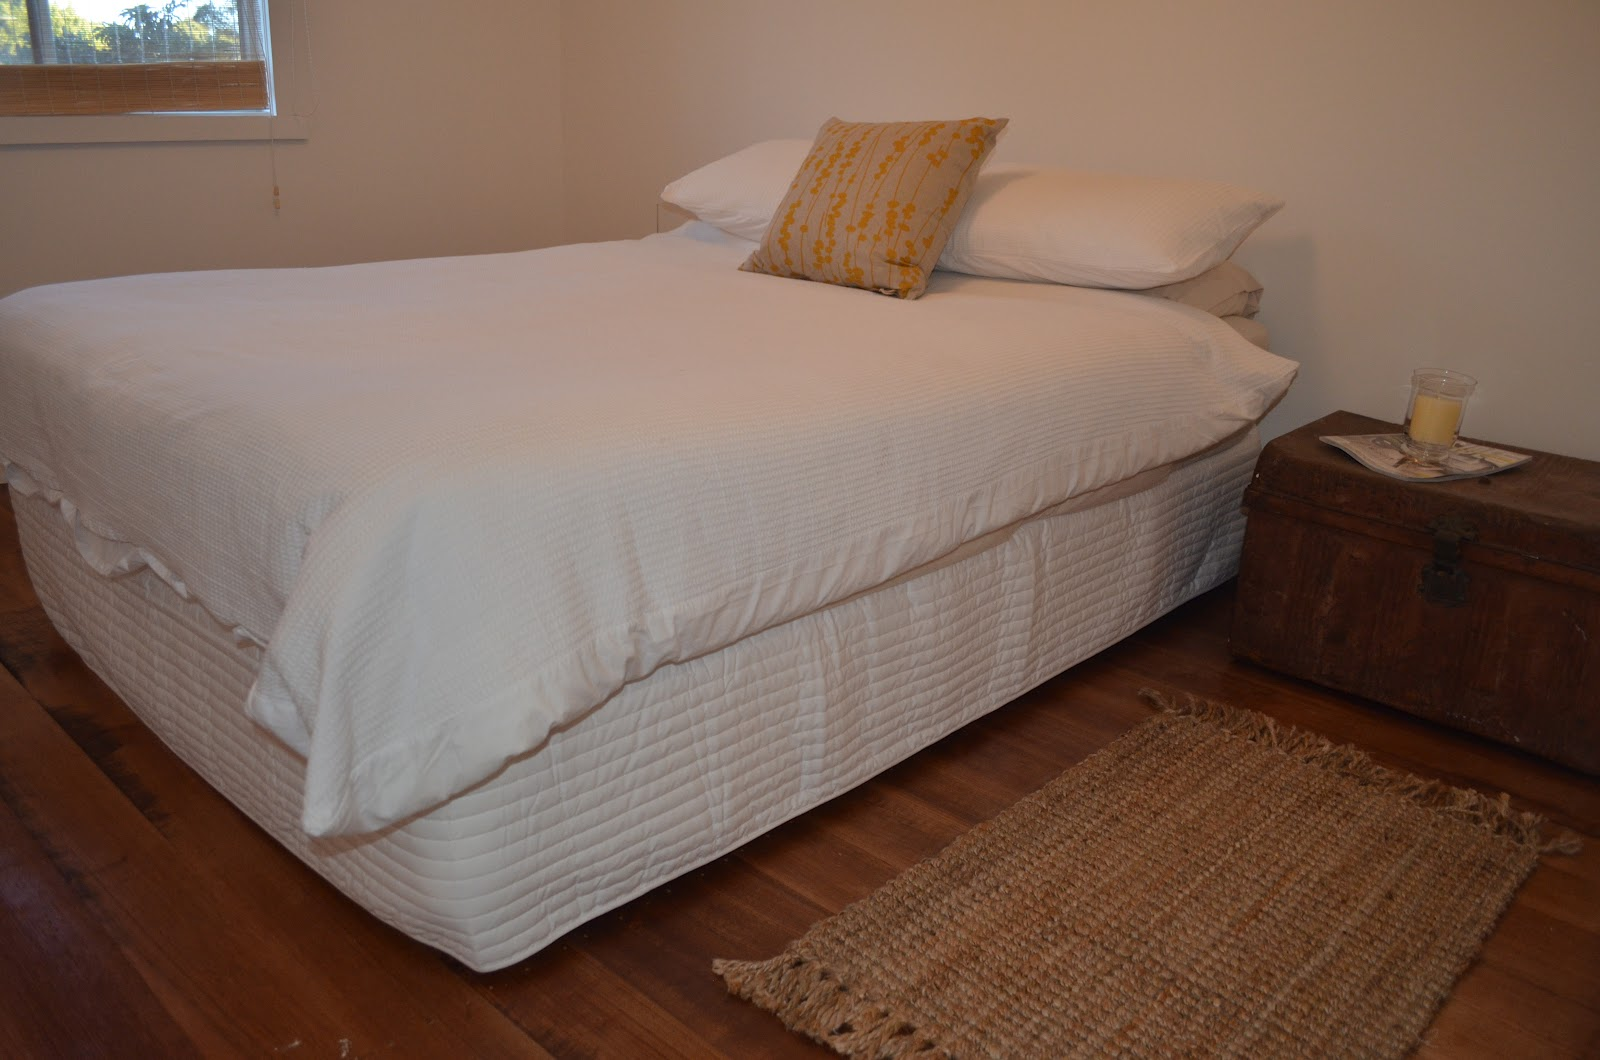 Second Hand Bedroom Suites For Hello From Tassie Beach Shack Bedroomsfinally Some Decoration